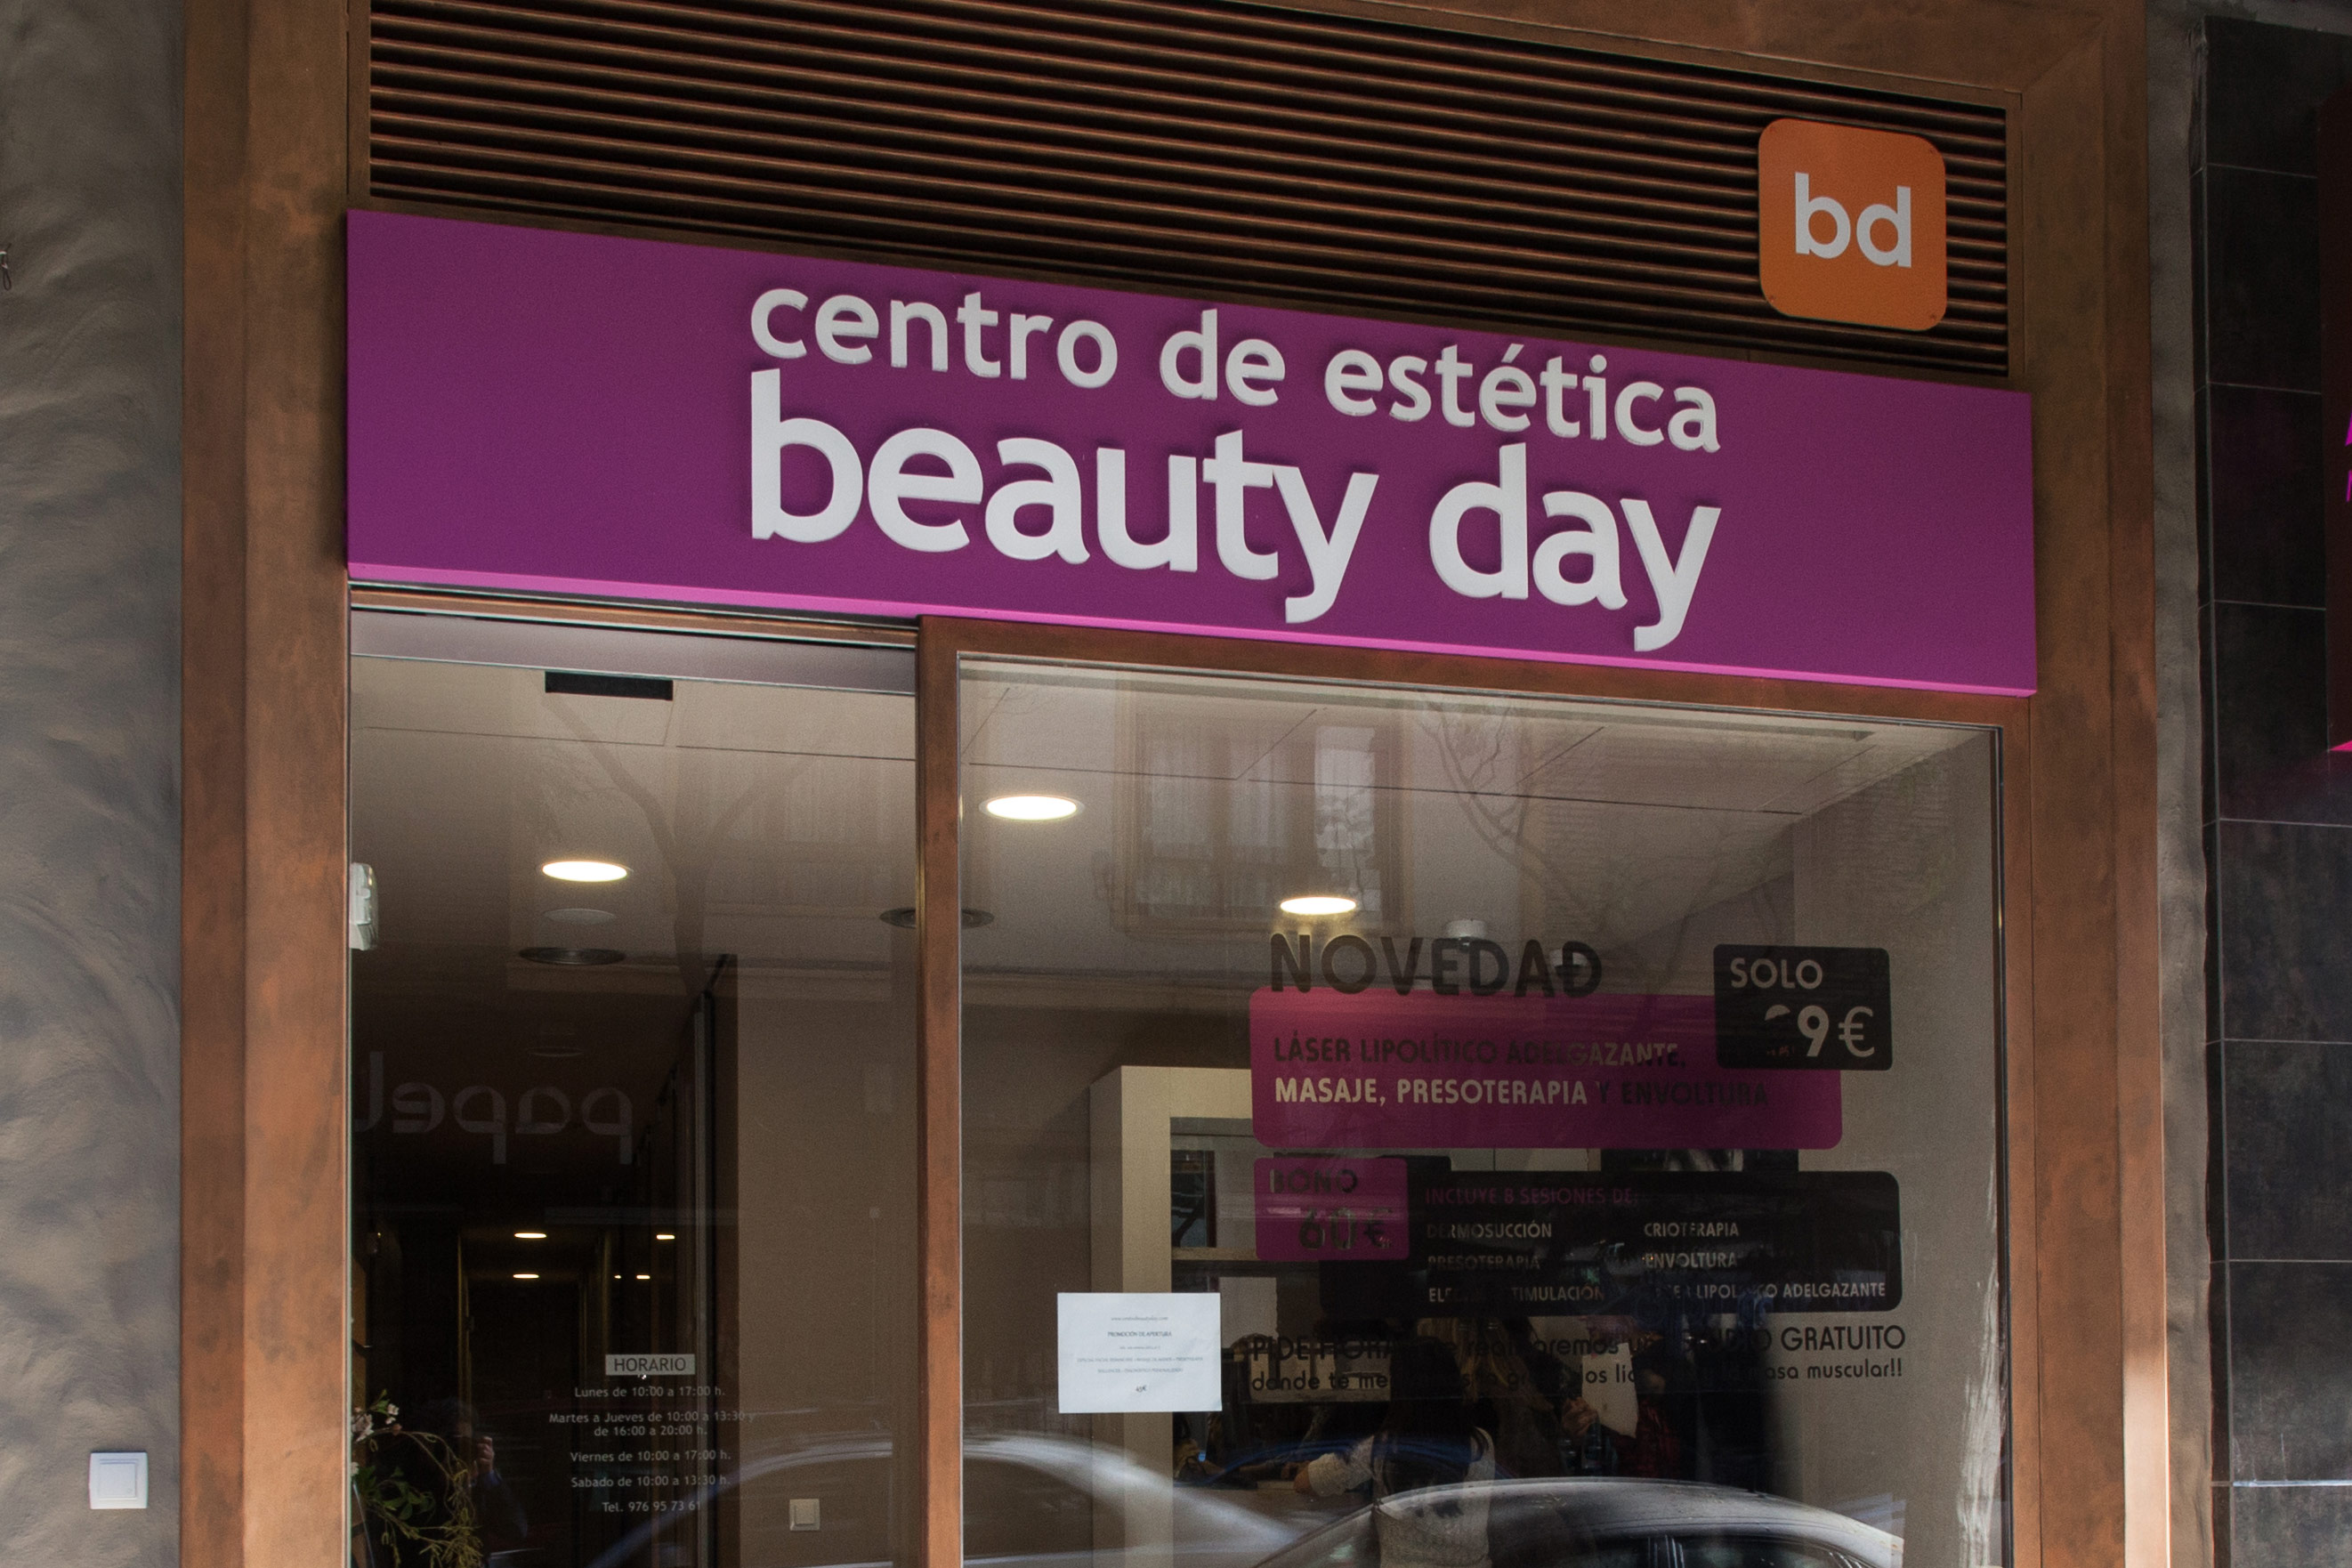 Centro de estética Beauty Day